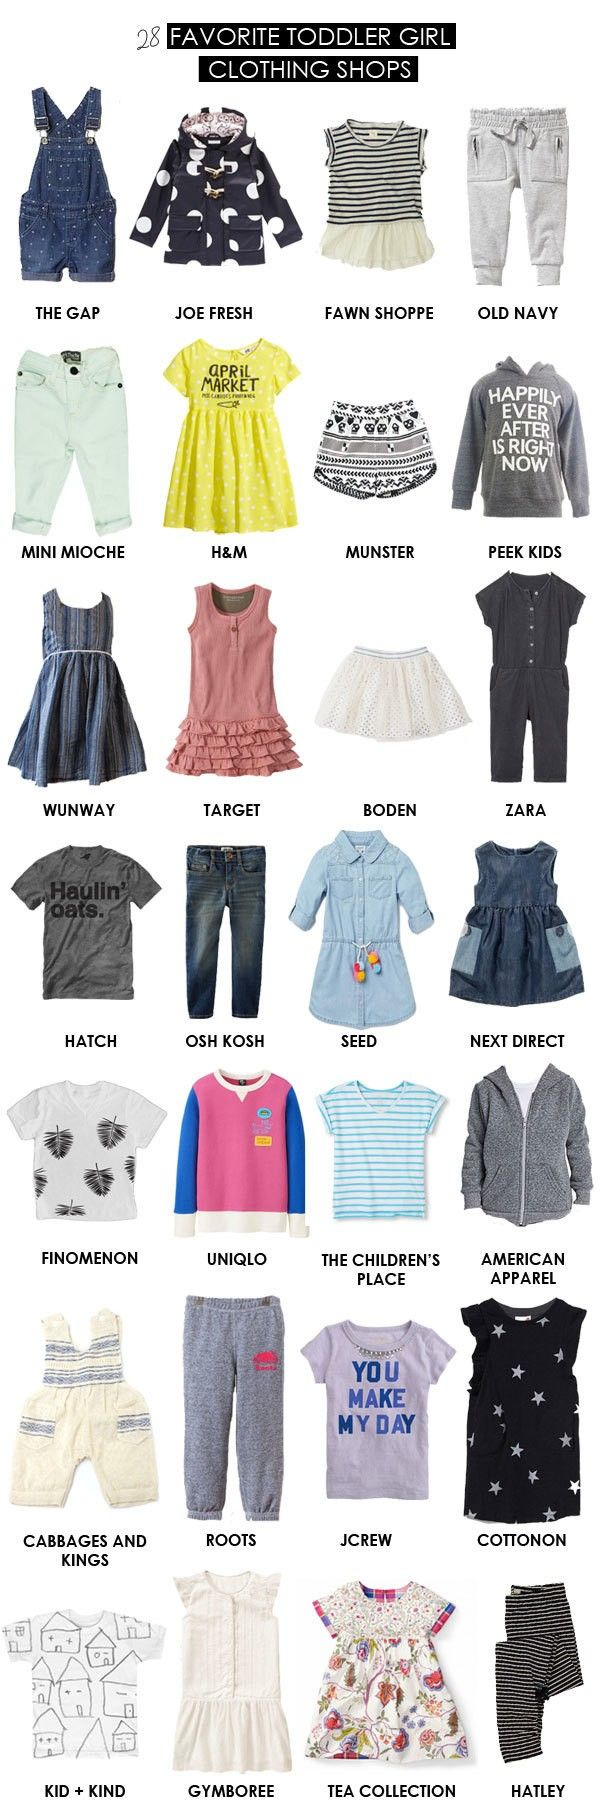 favorite toddler girl clothing stores